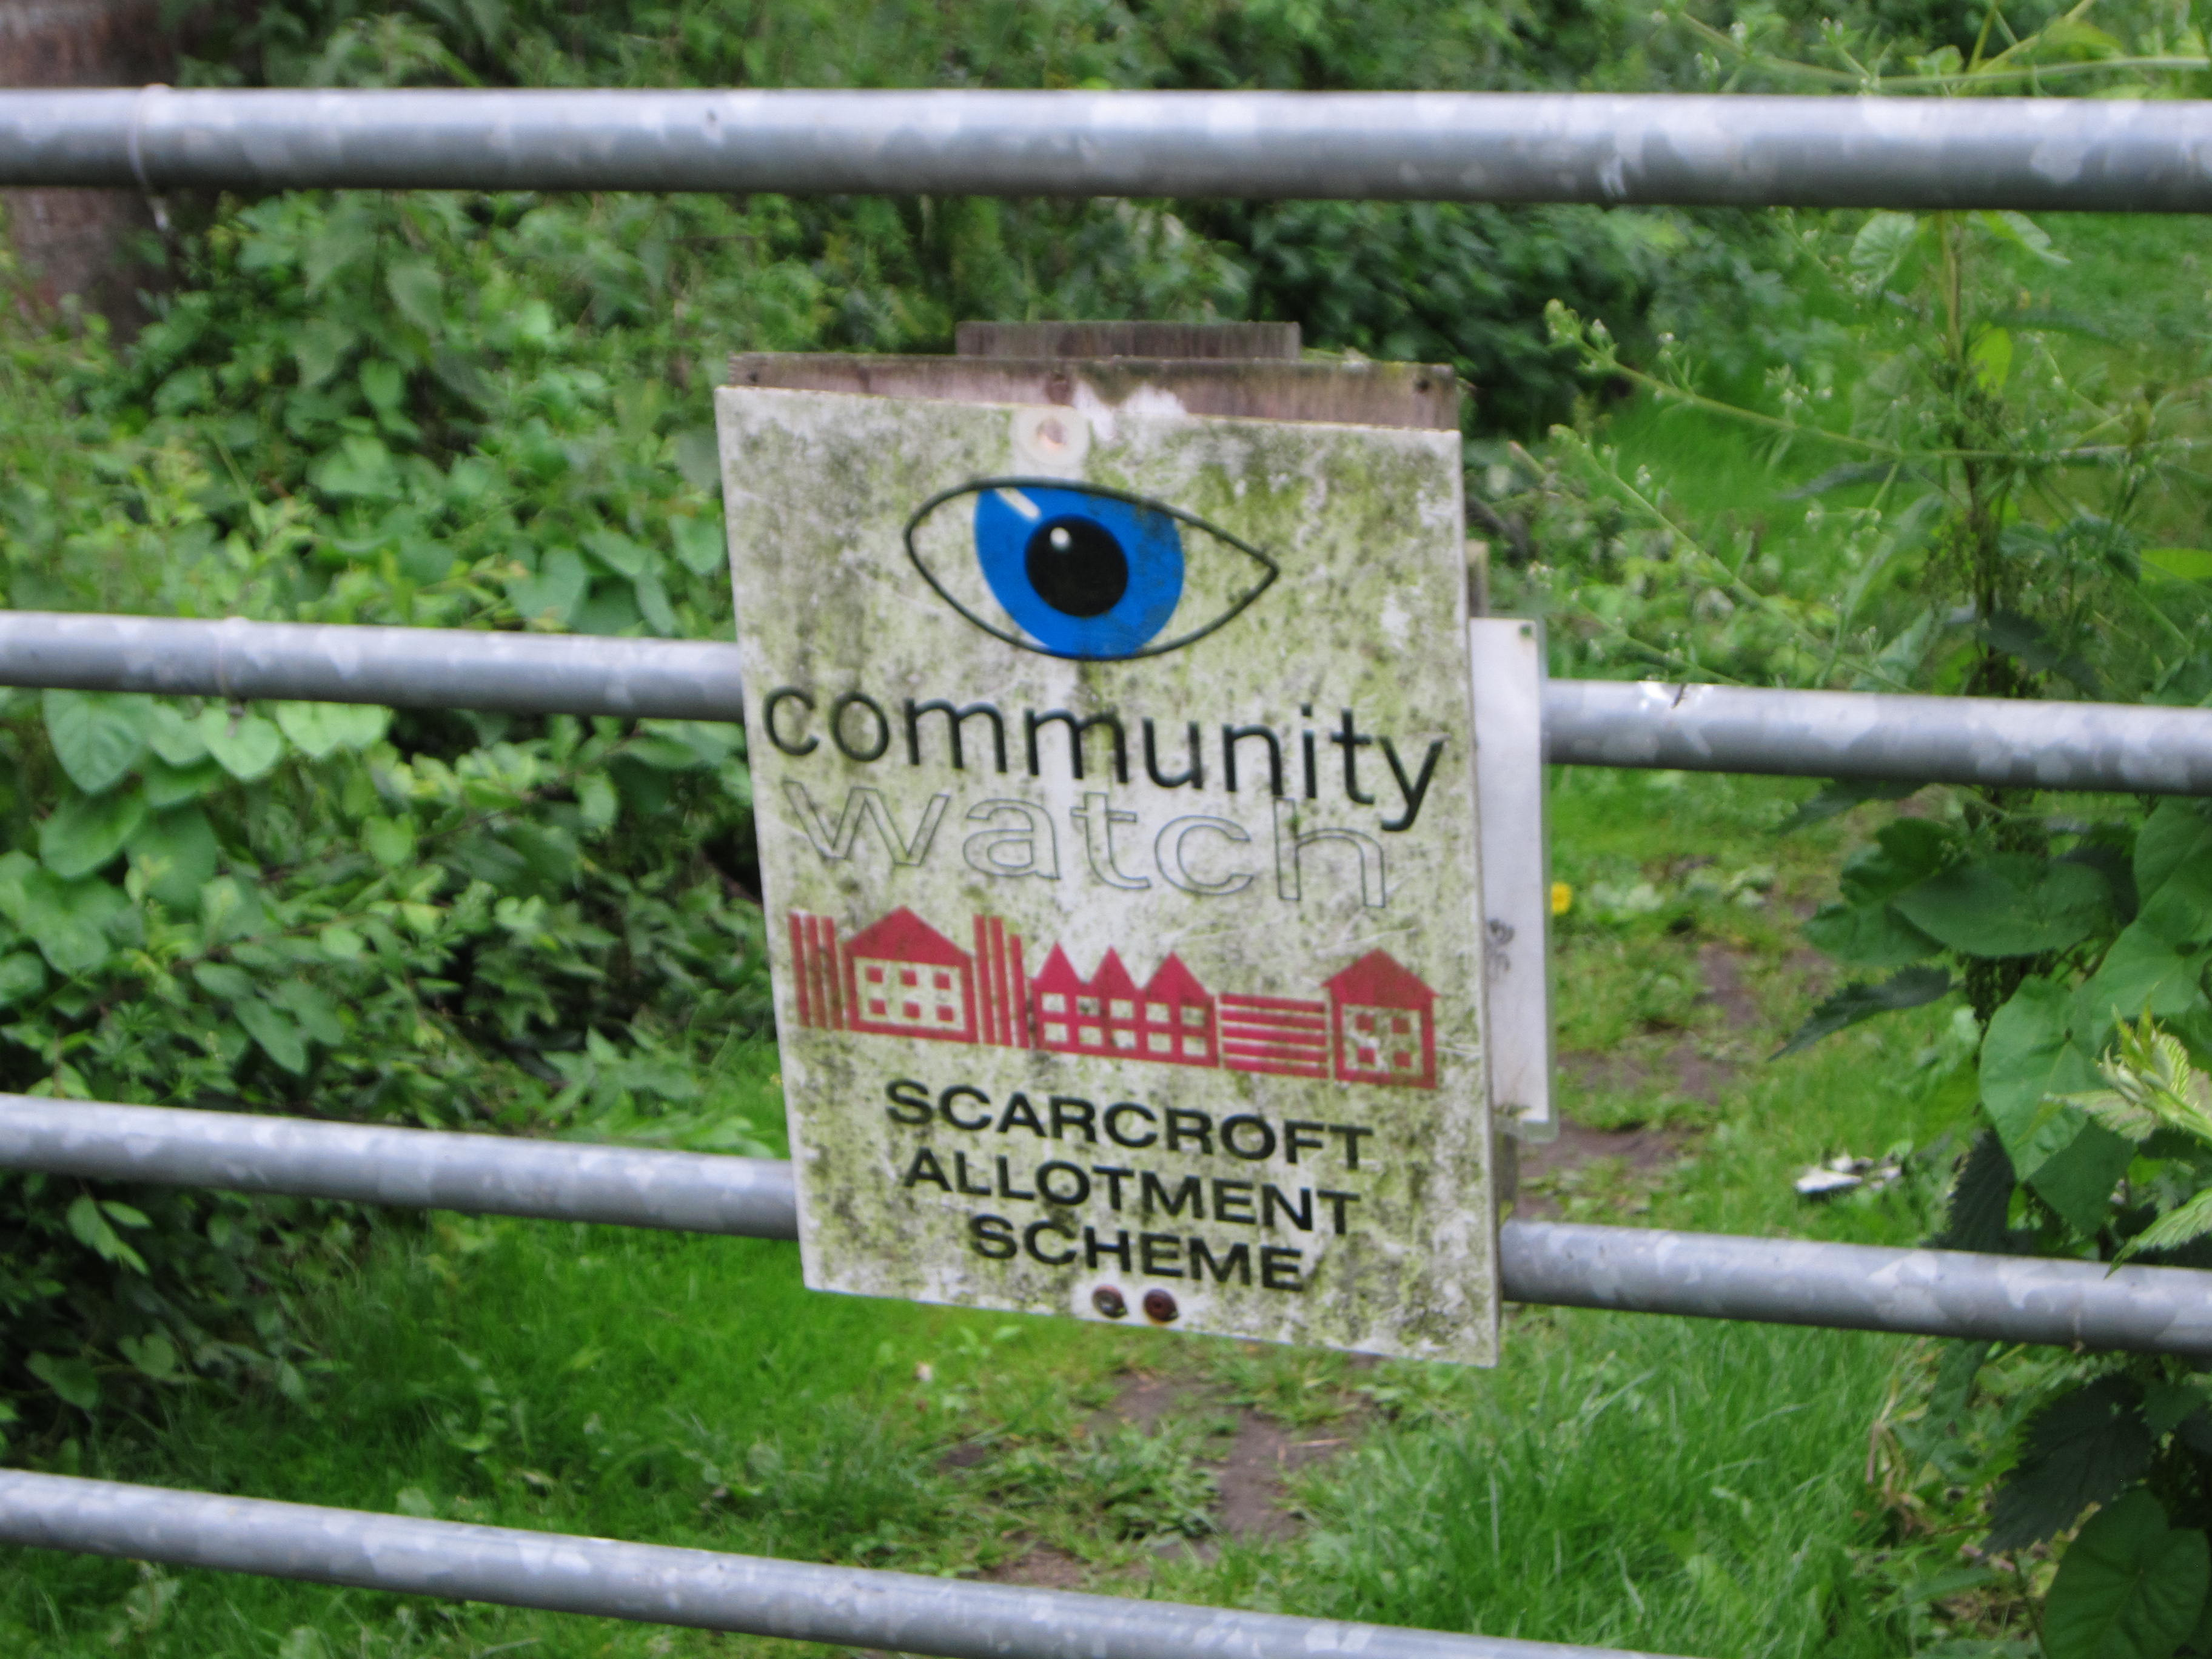 The Scarcroft Allotment Scheme. Sounds fishy, doesn't it?